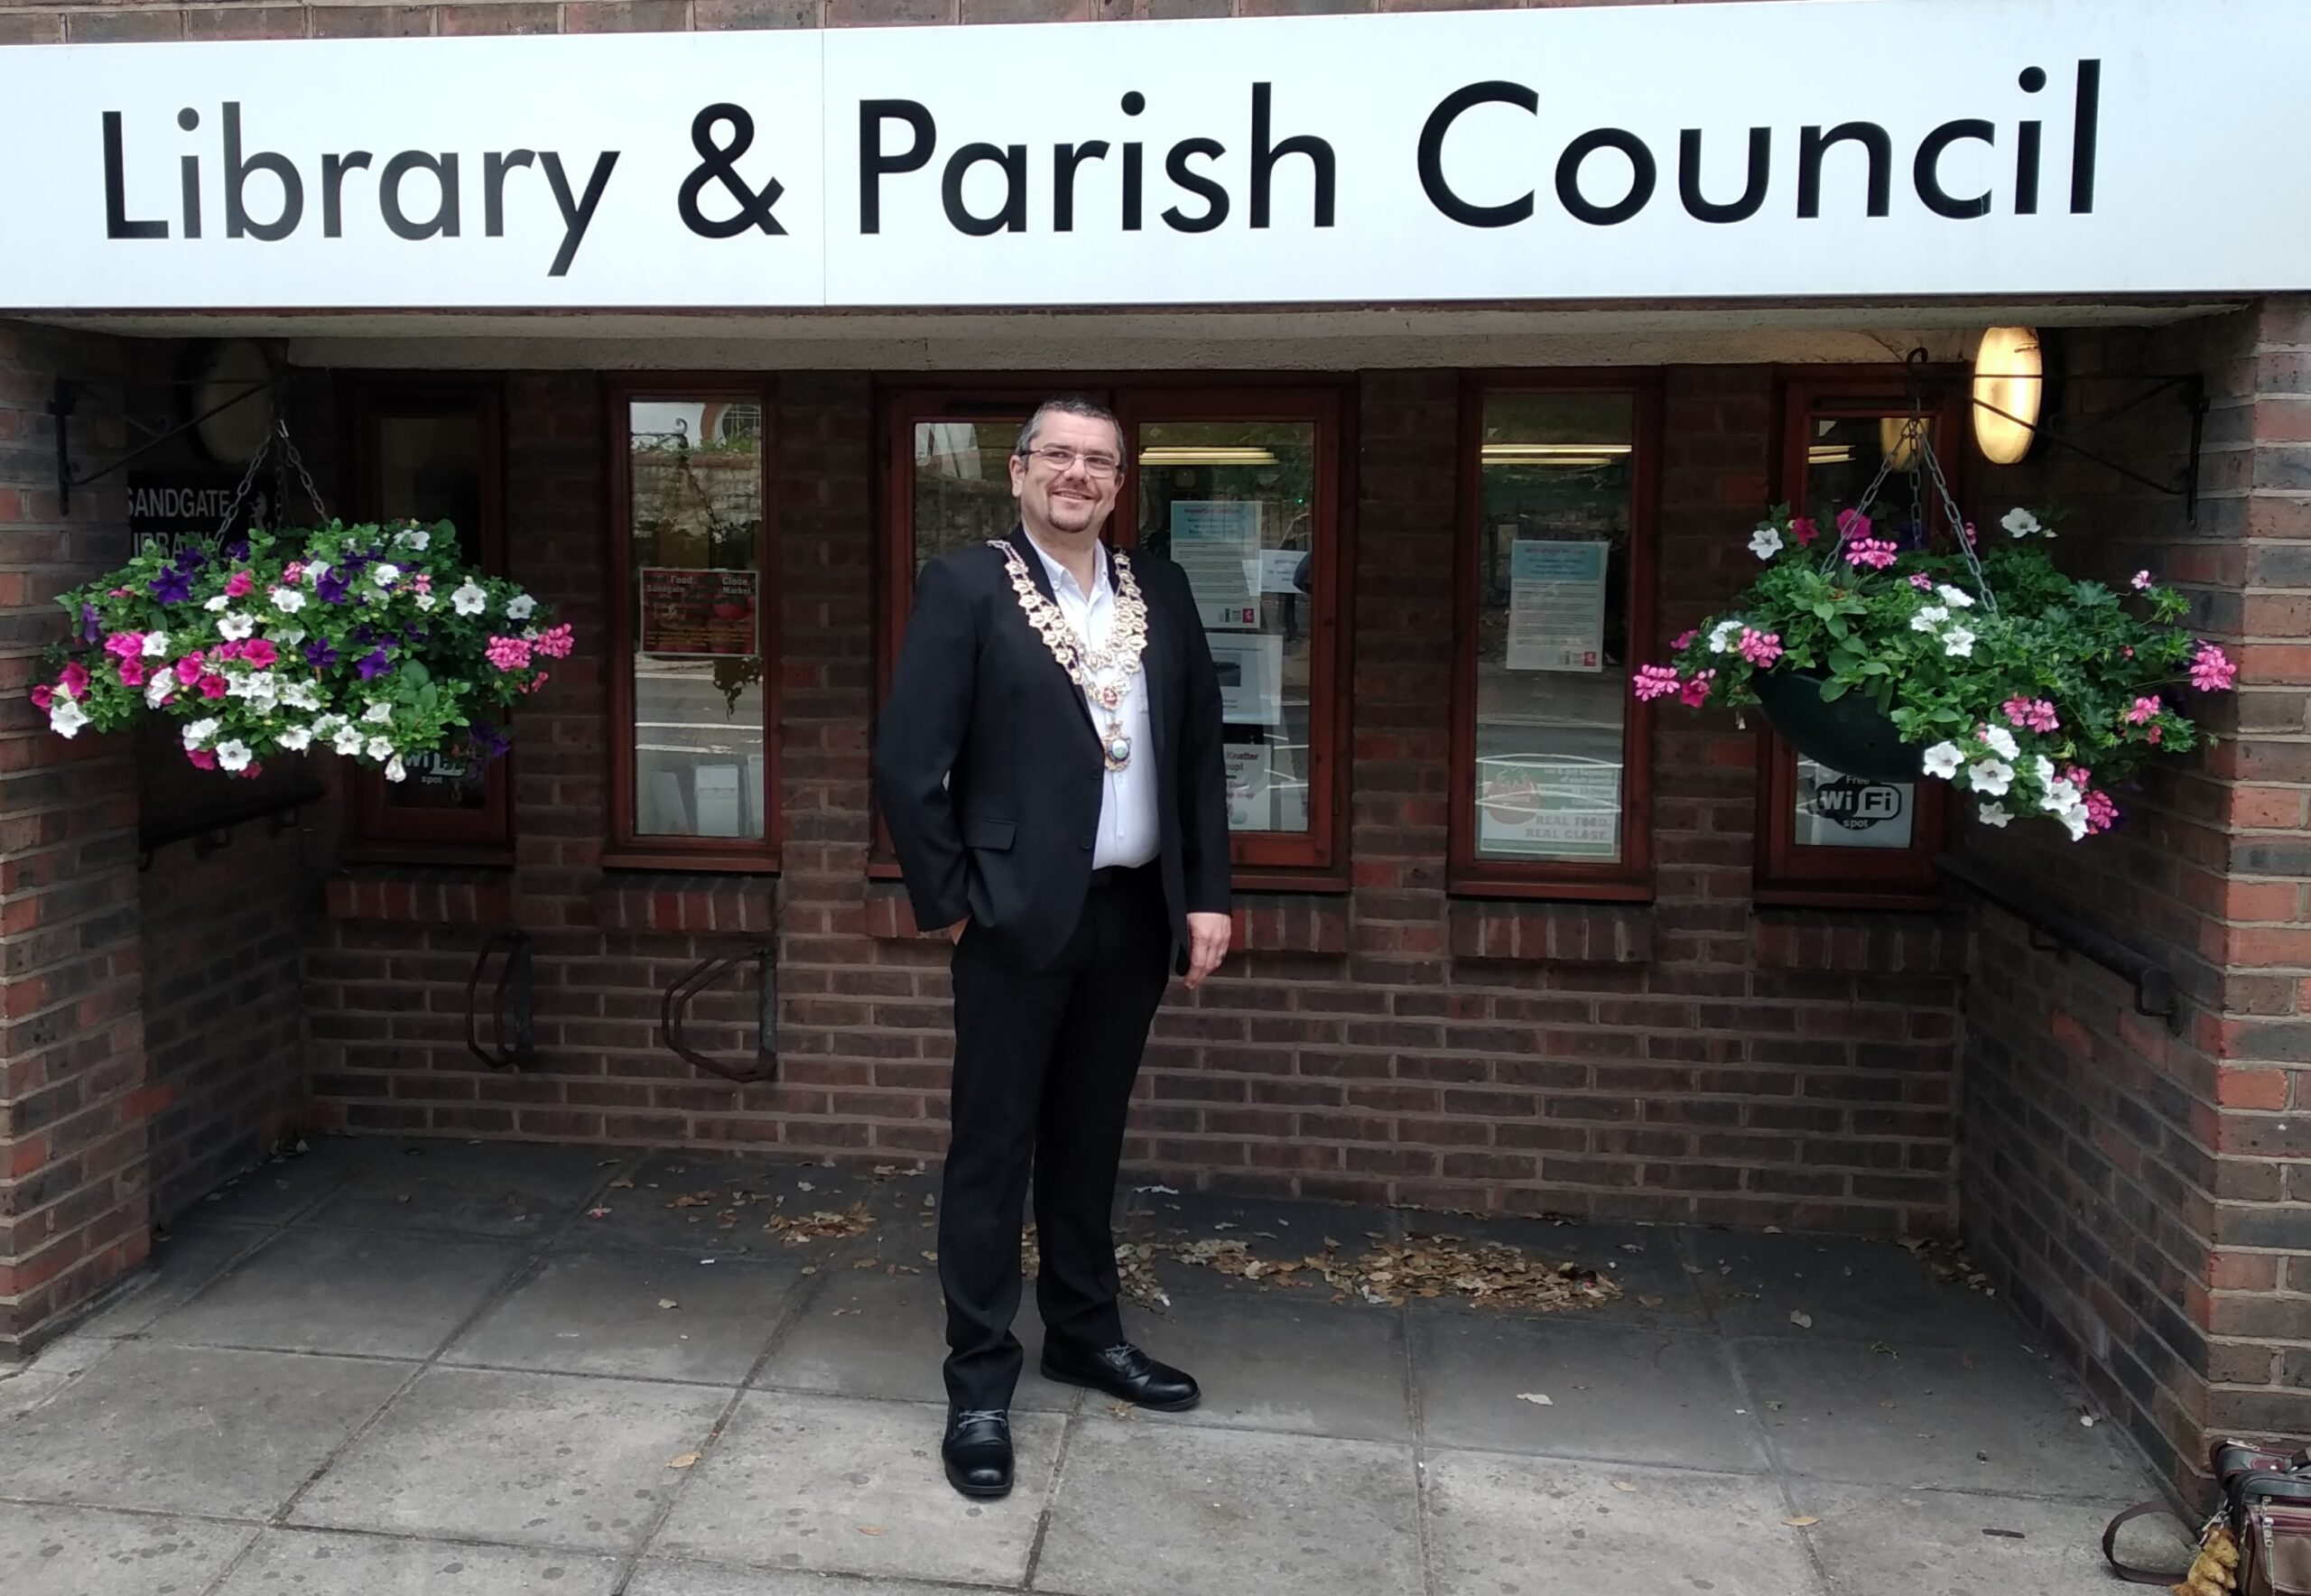 Tim Prater outside the Library and Parish Council office